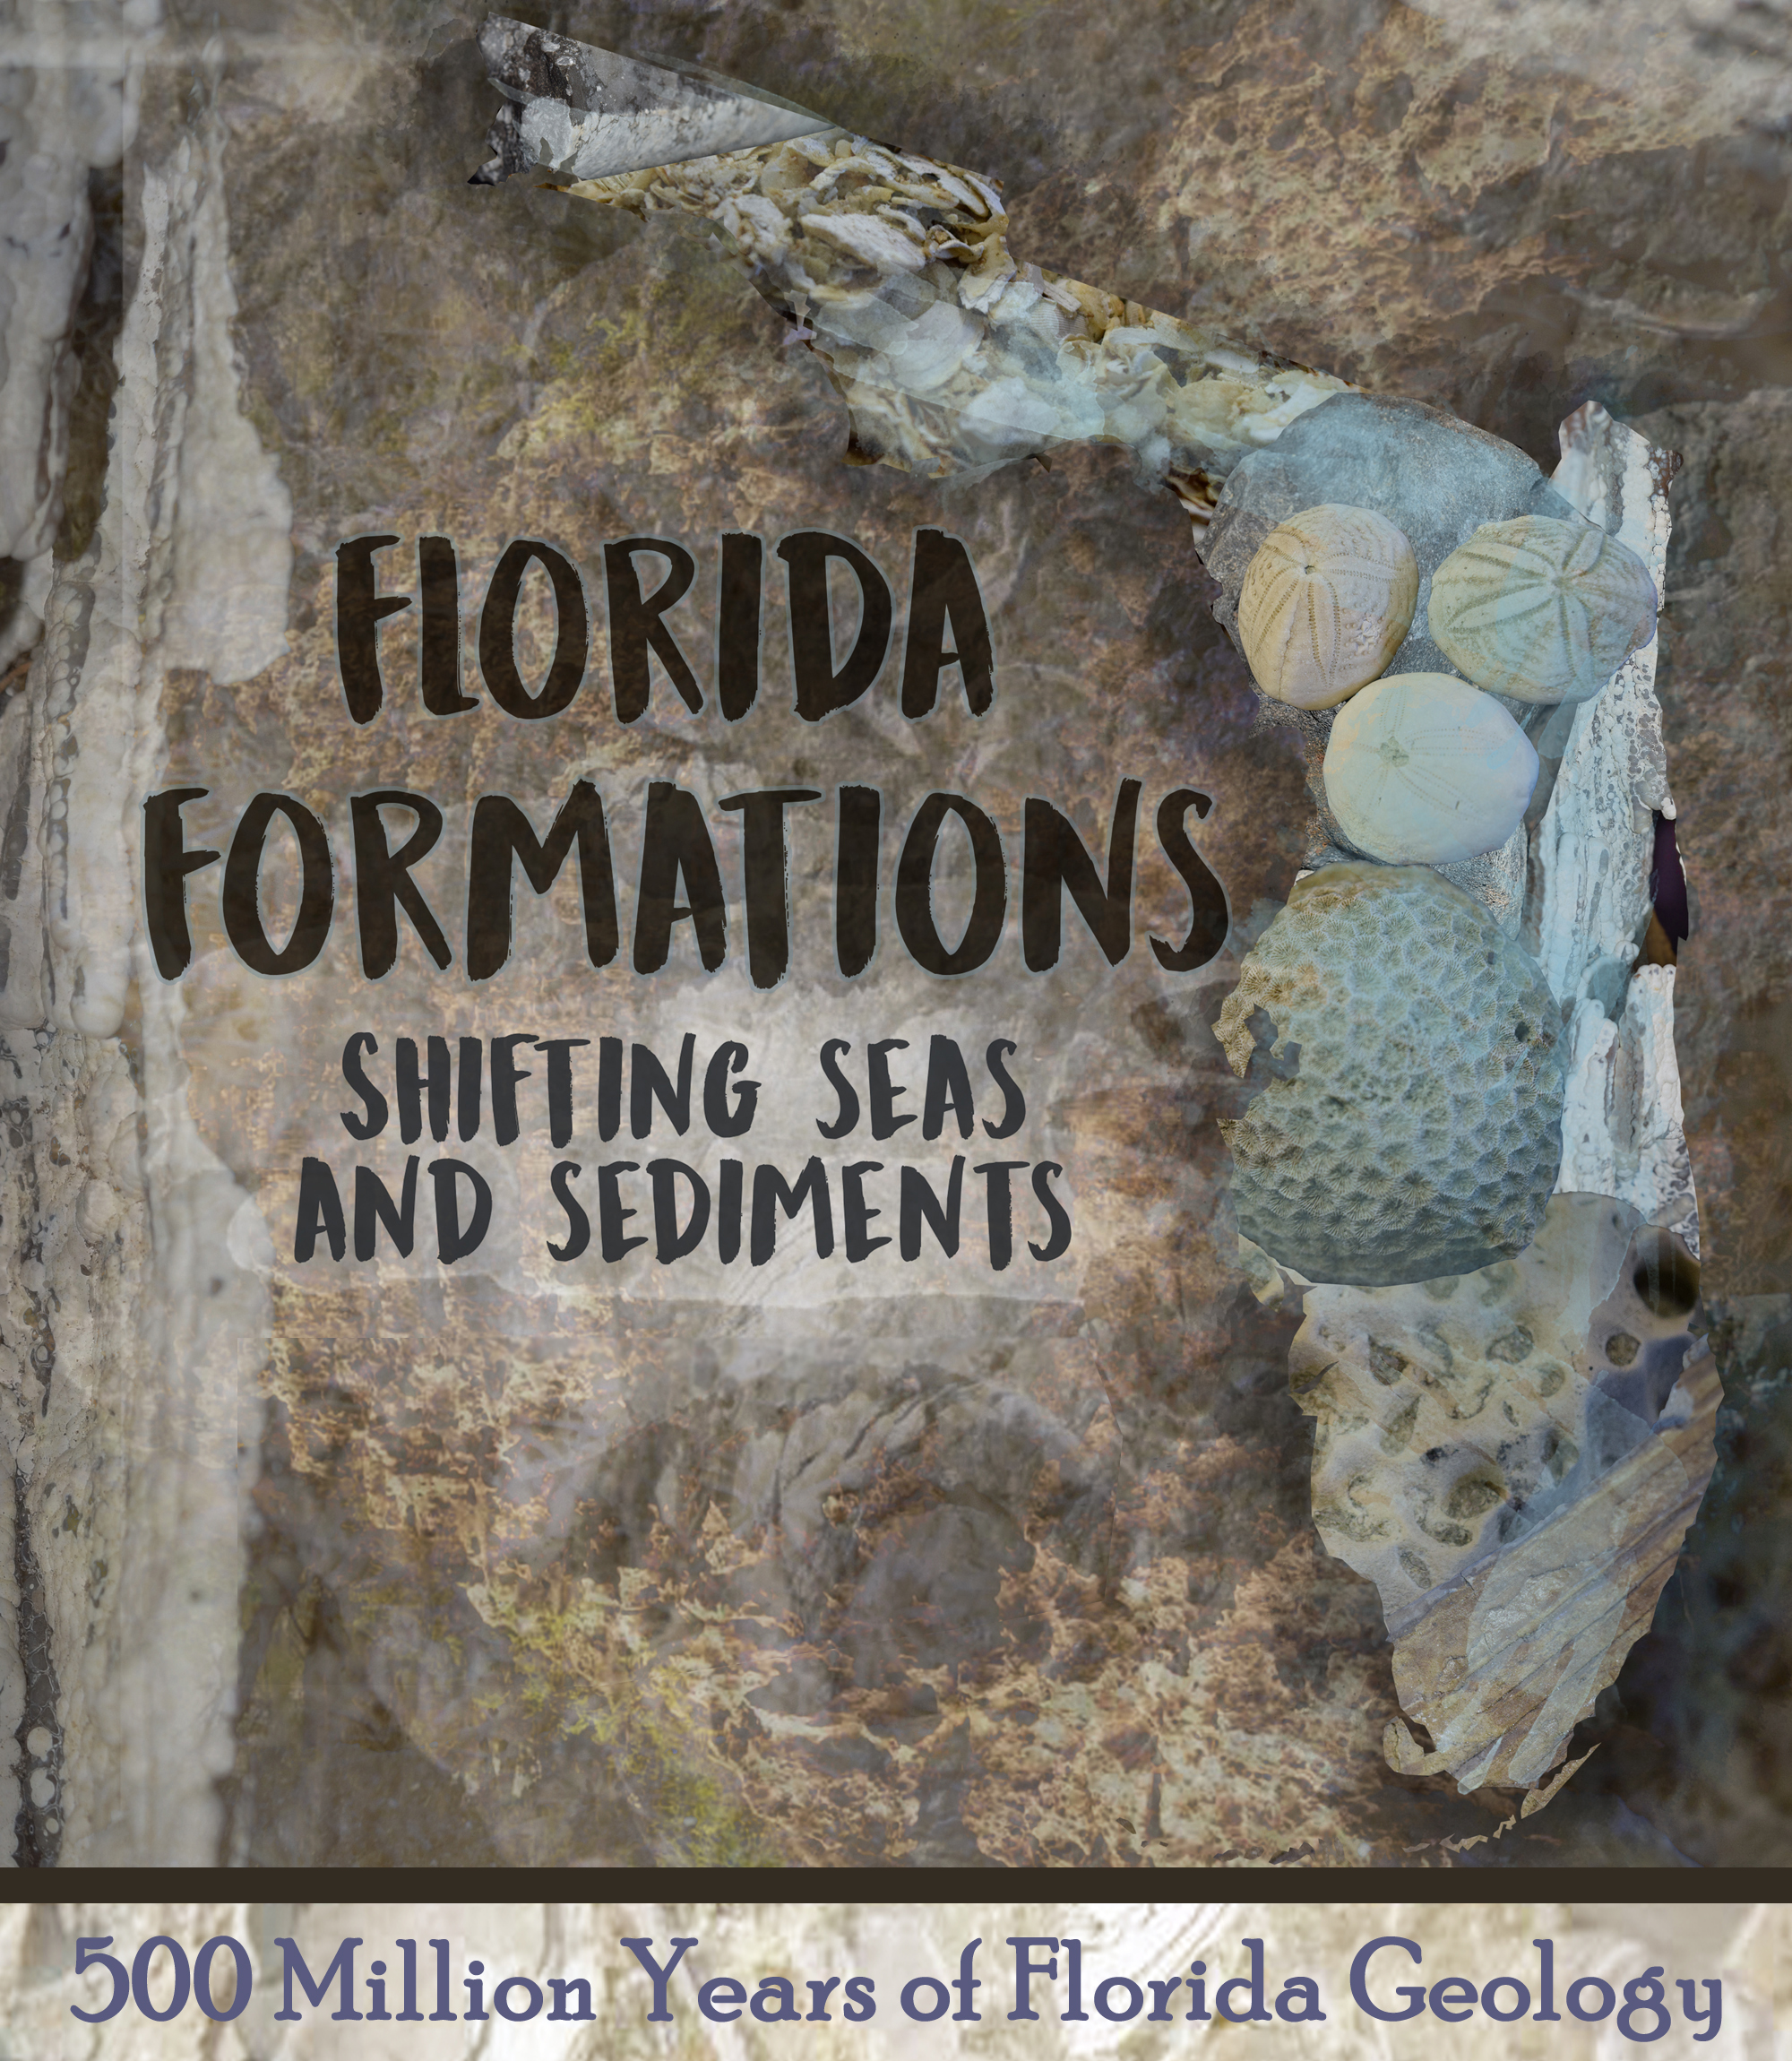 Florida Formations exhibit